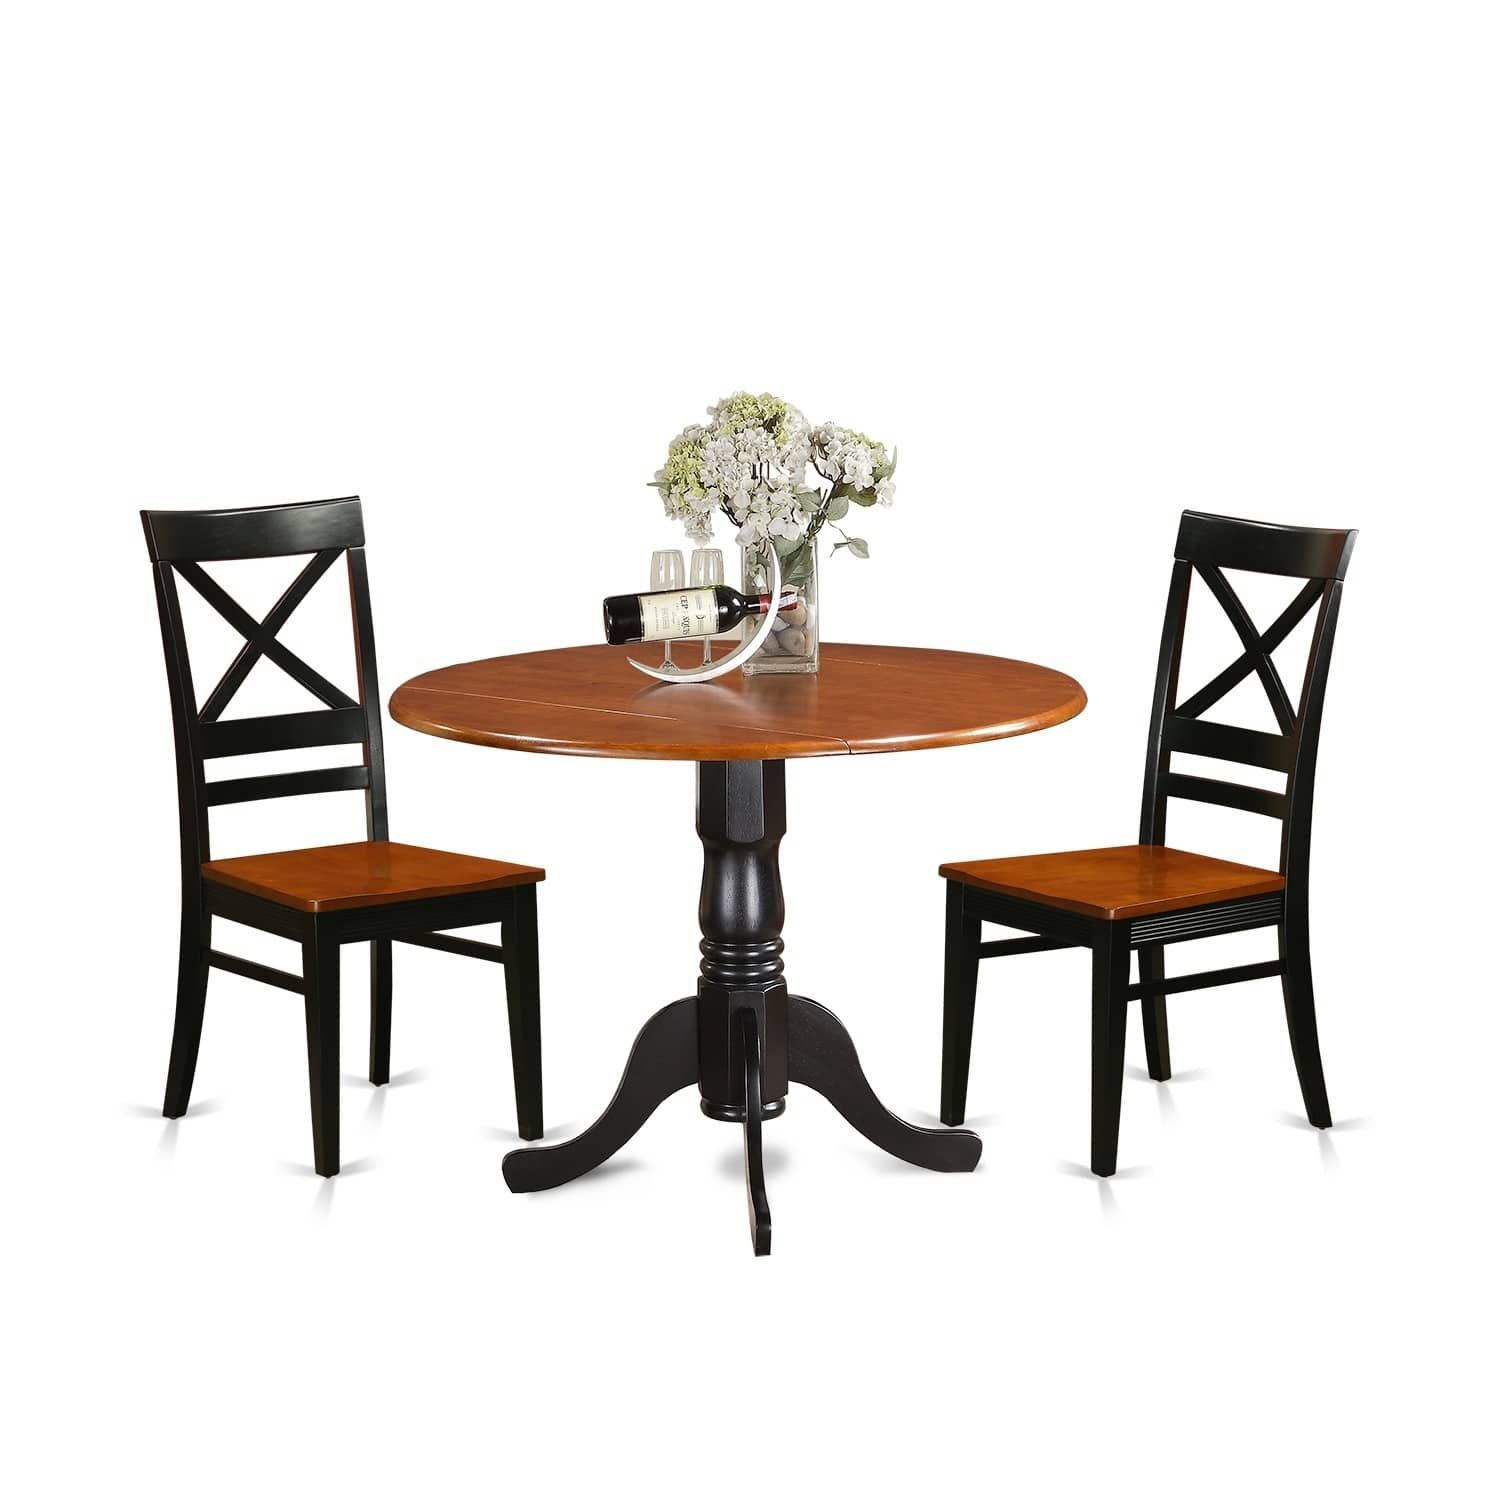 Dlquw pc kitchen table setdining table and kitchen chairs